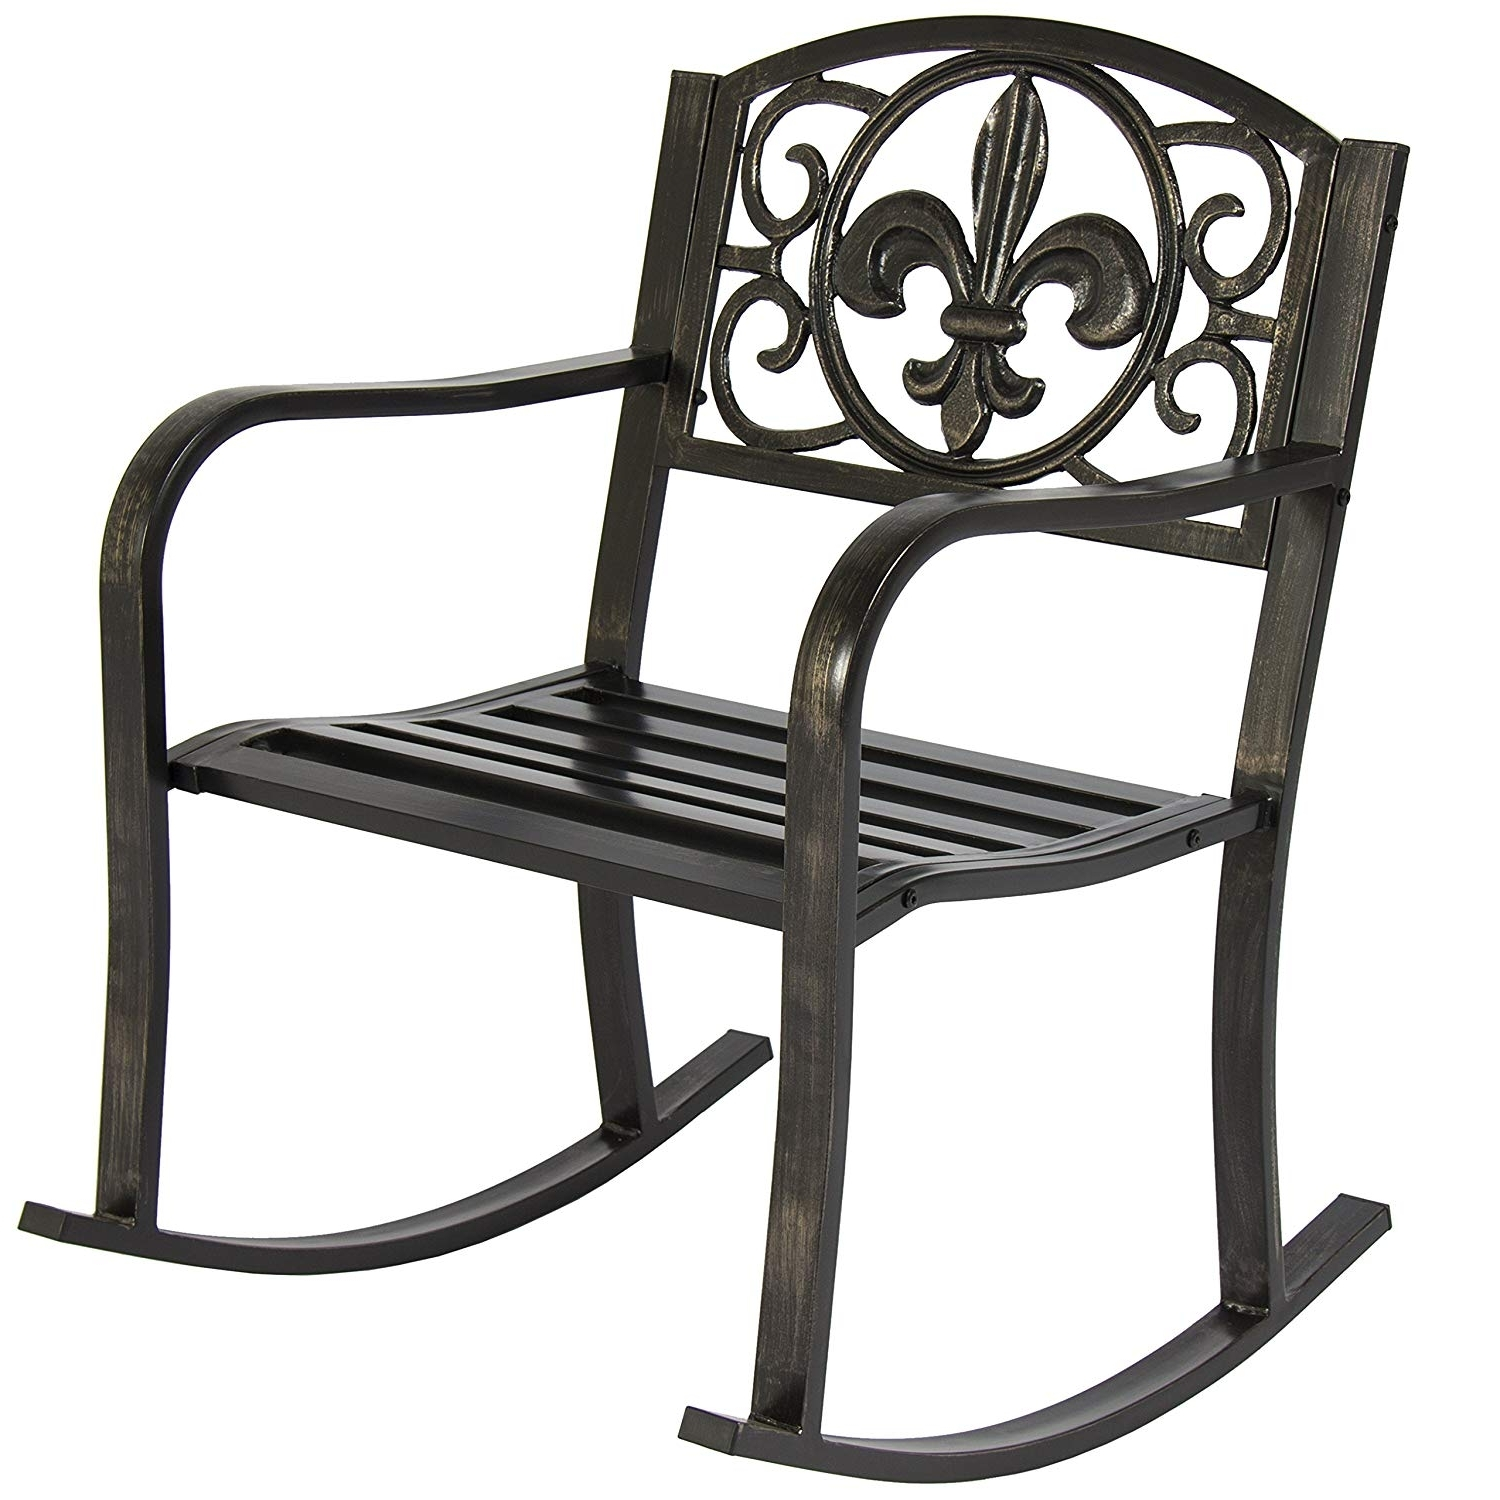 Trendy Amazon : Best Choice Products Metal Rocking Chair Seat For Patio With Regard To Outdoor Patio Metal Rocking Chairs (View 3 of 15)